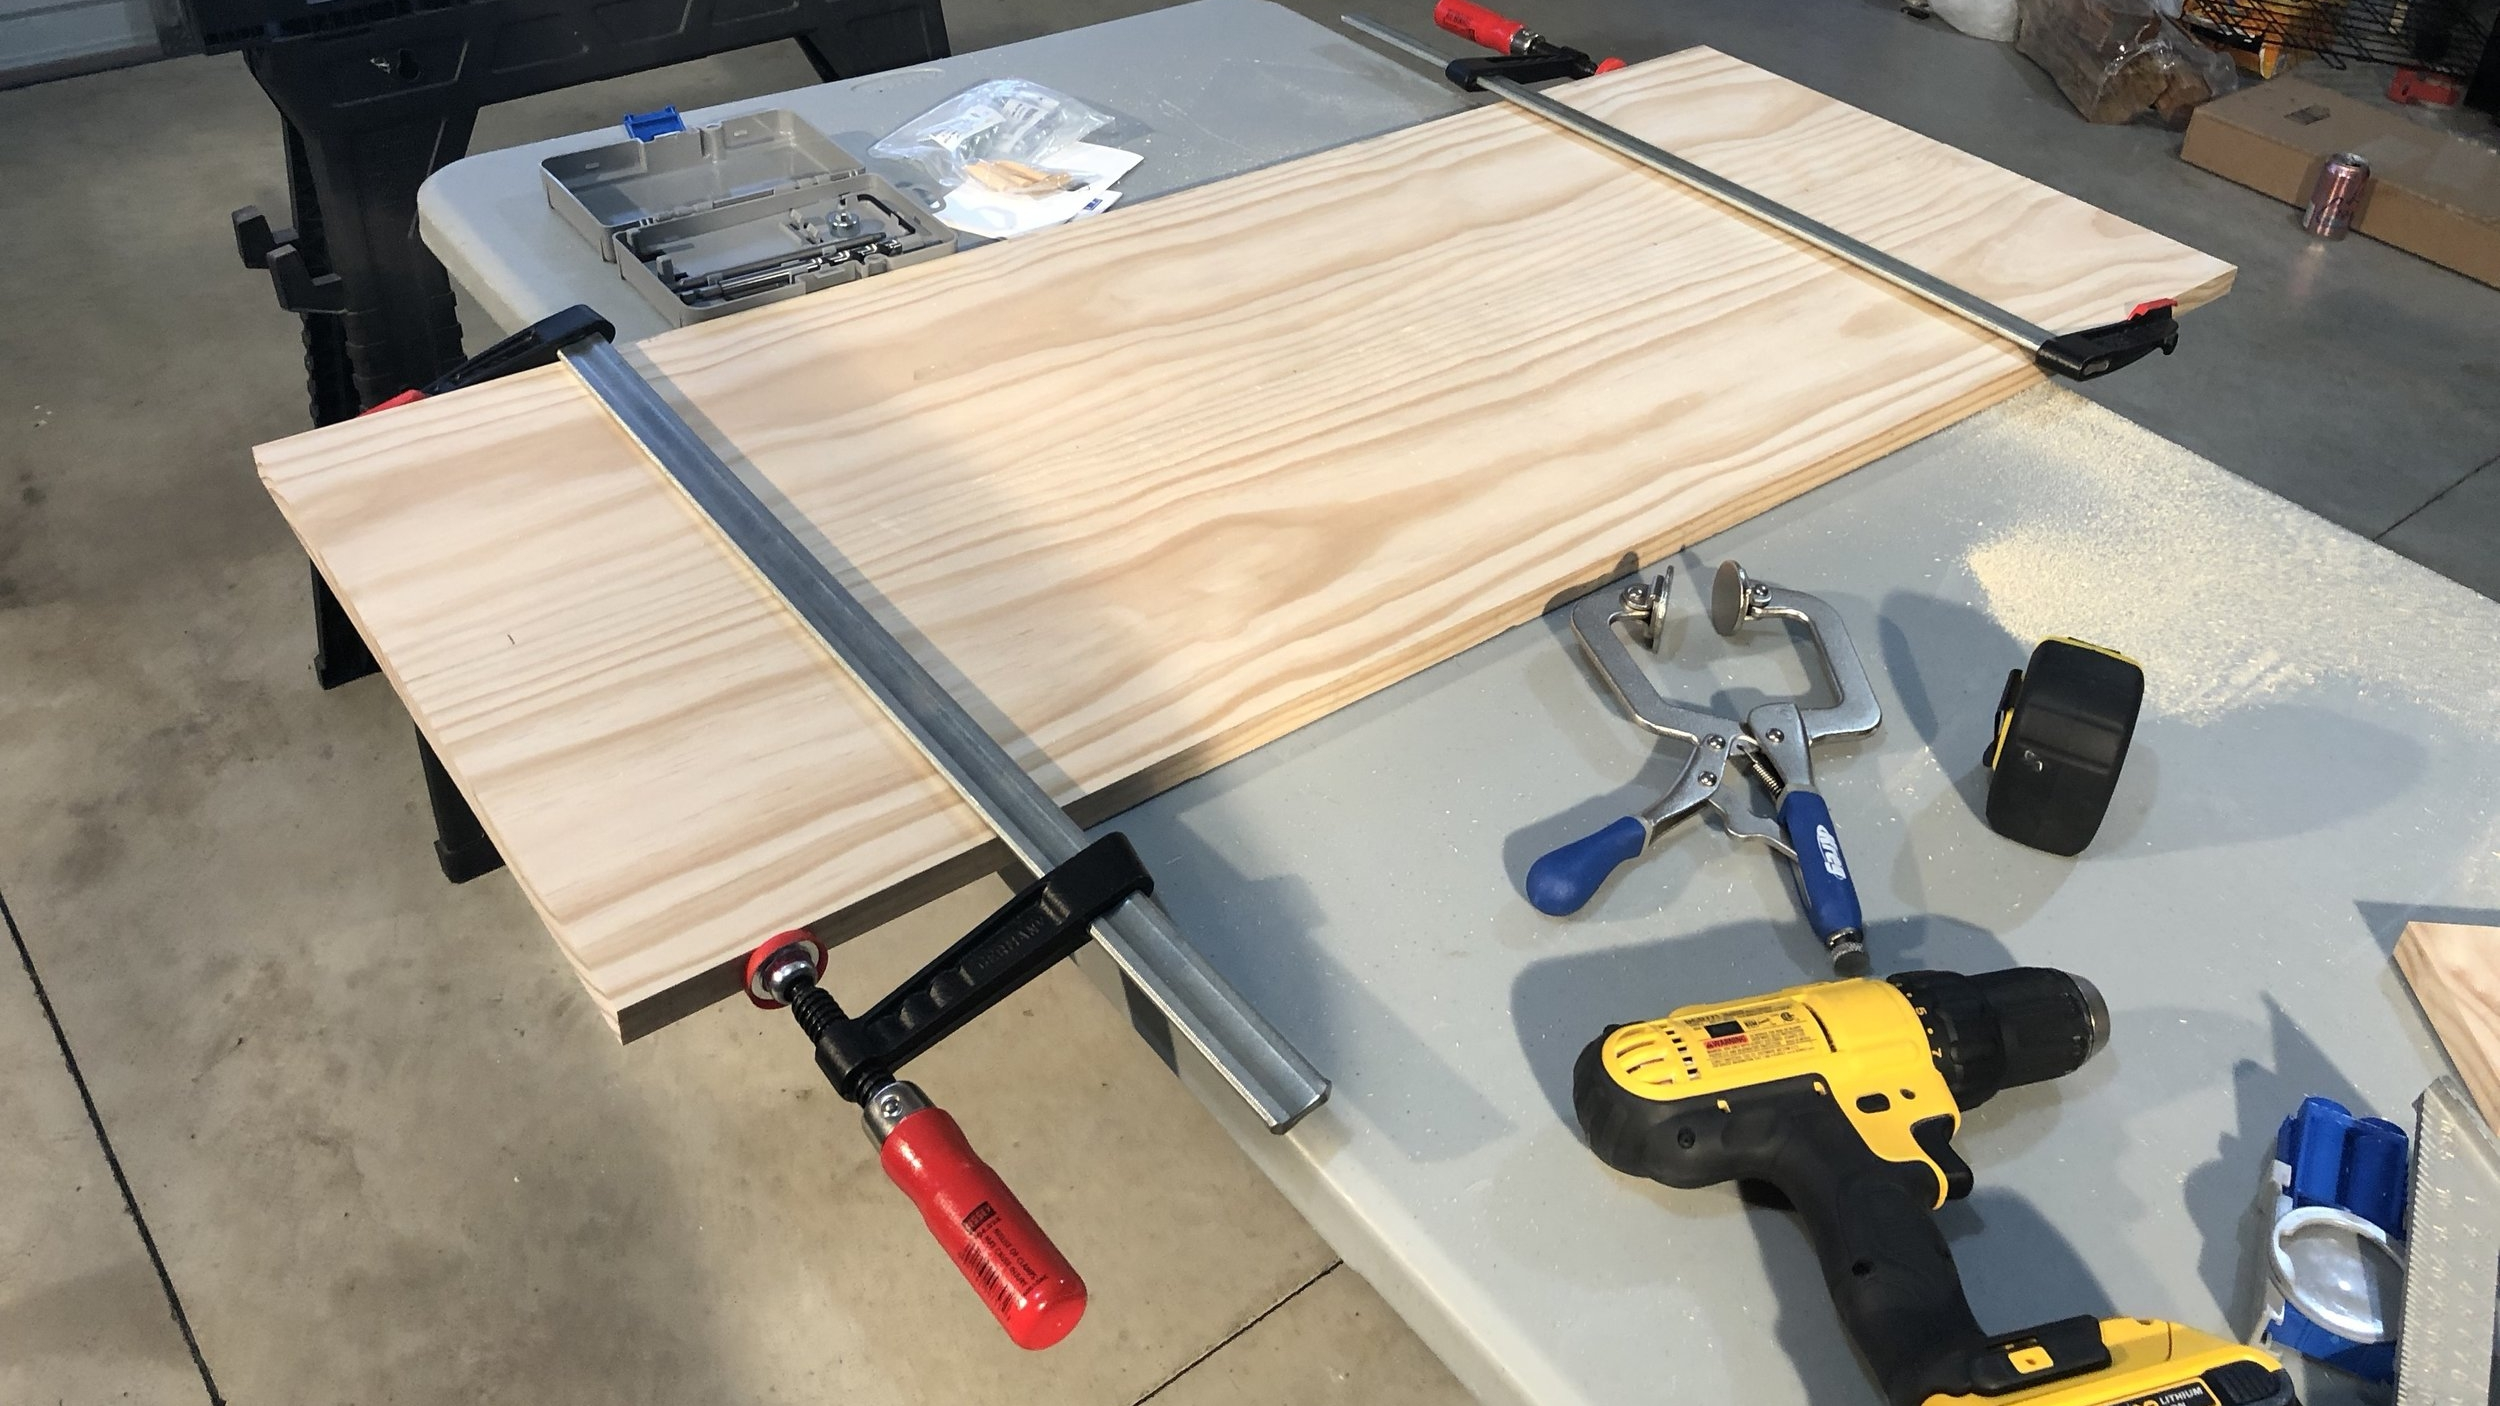 The Base - We started by measuring our dresser top, we then cut a pine board into two lengths the same as the width of our dresser.